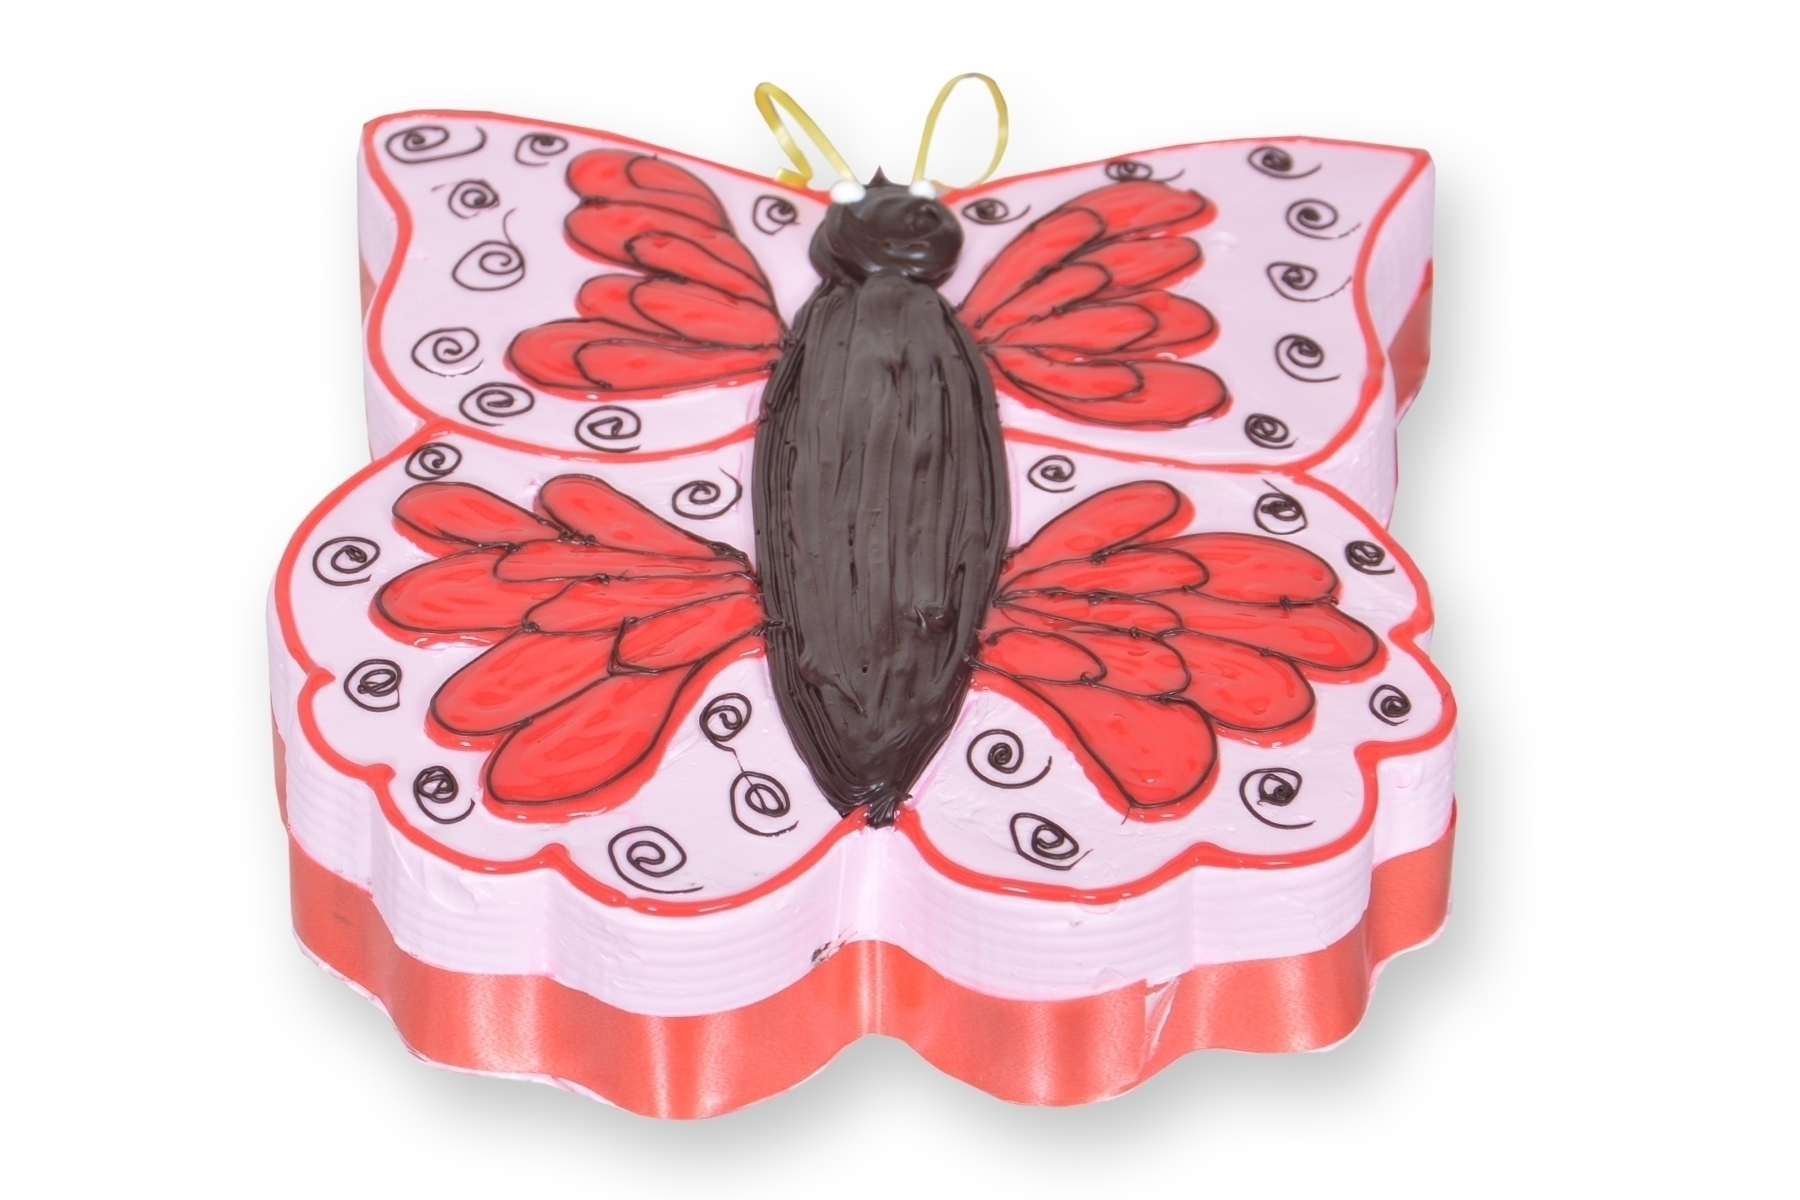 Butterfly Cake in Pune Designs, Images, Price